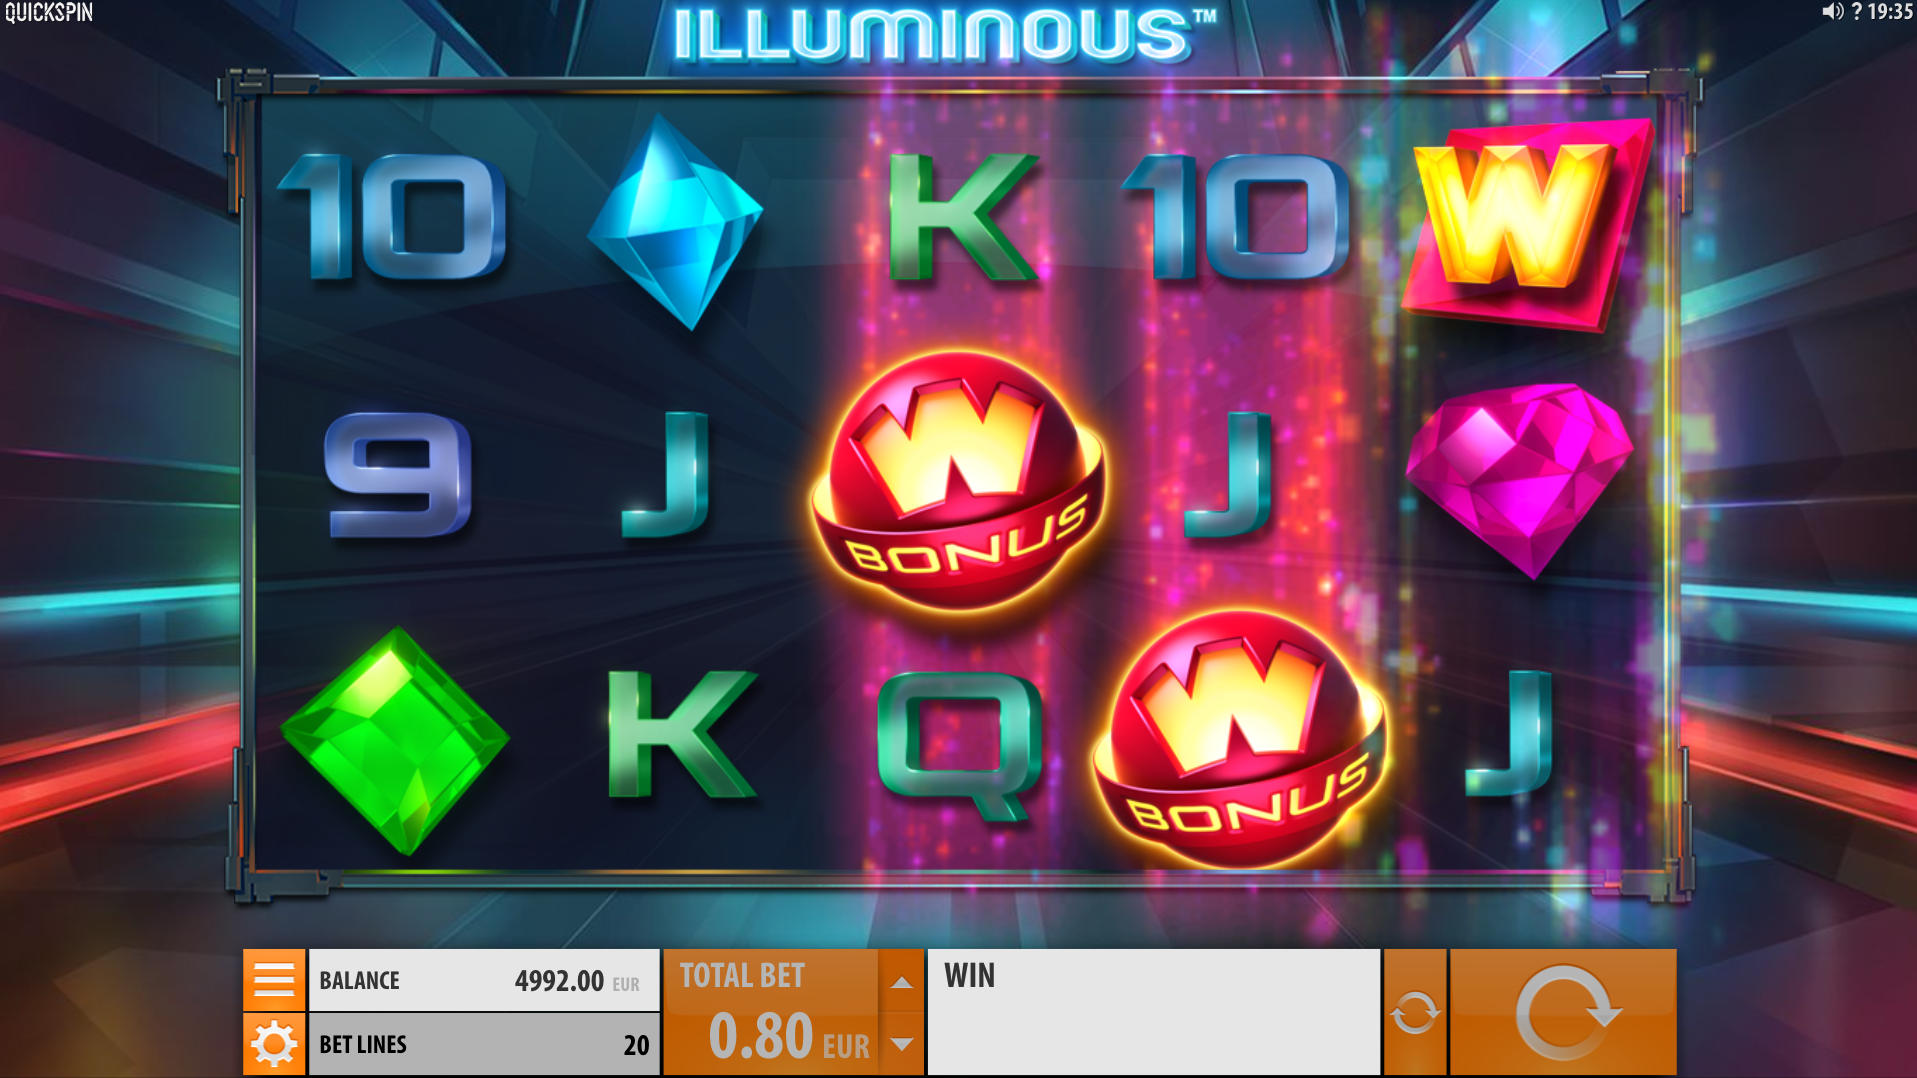 A slot game